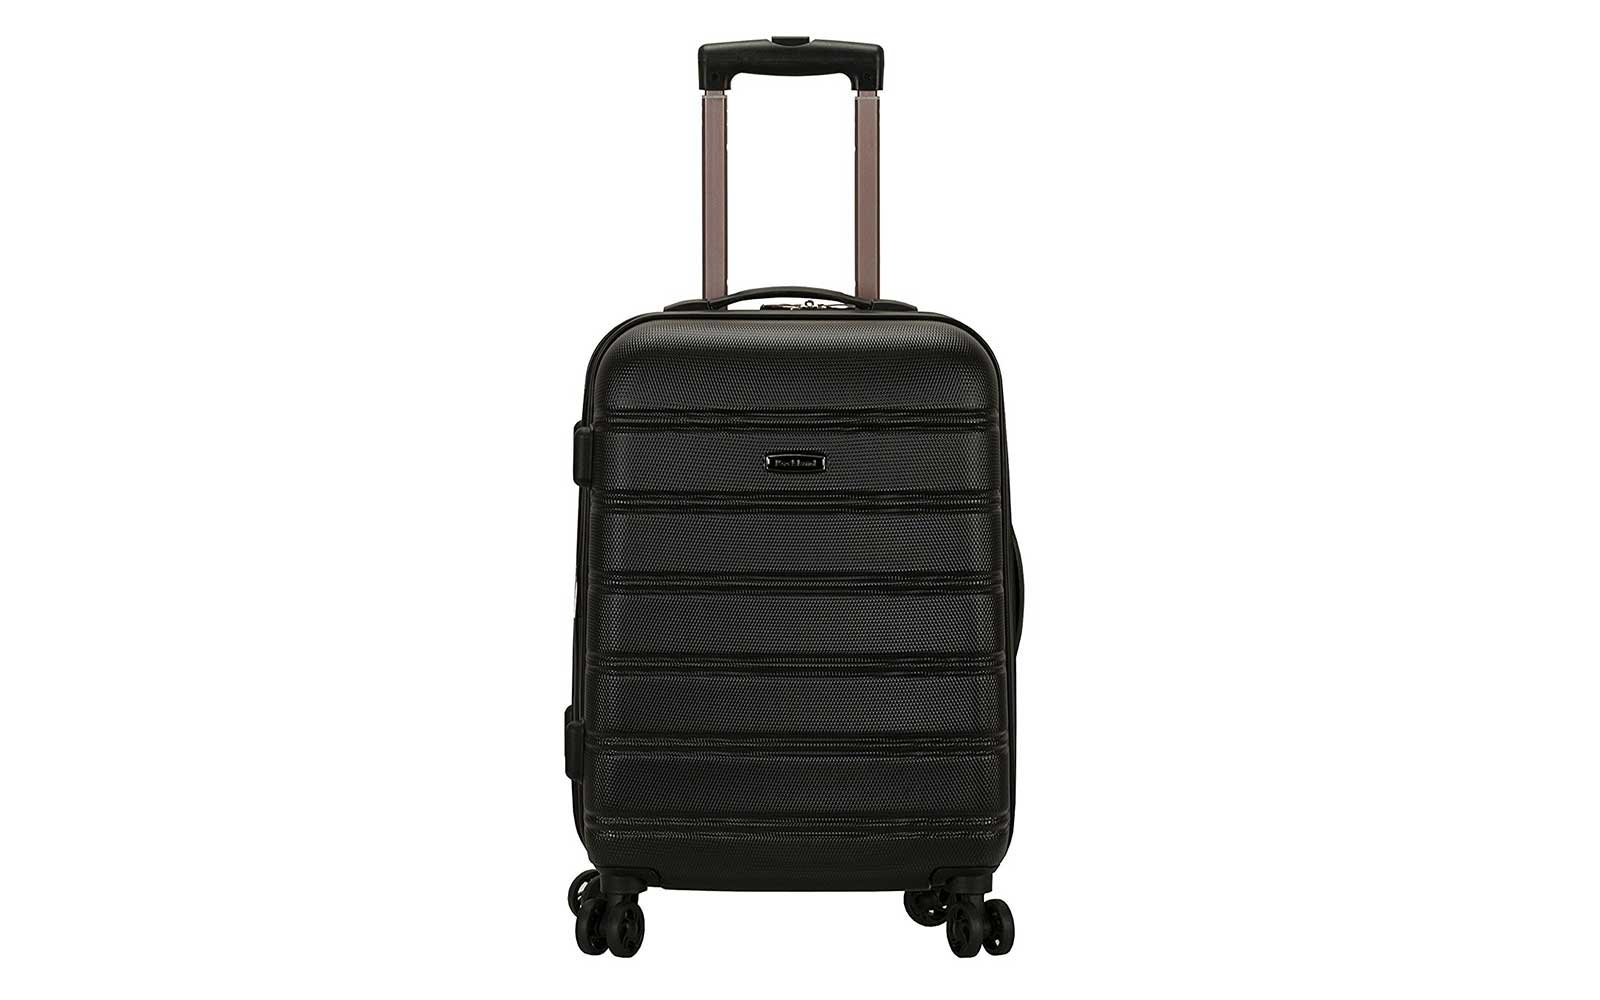 Rockland rolling suitcase